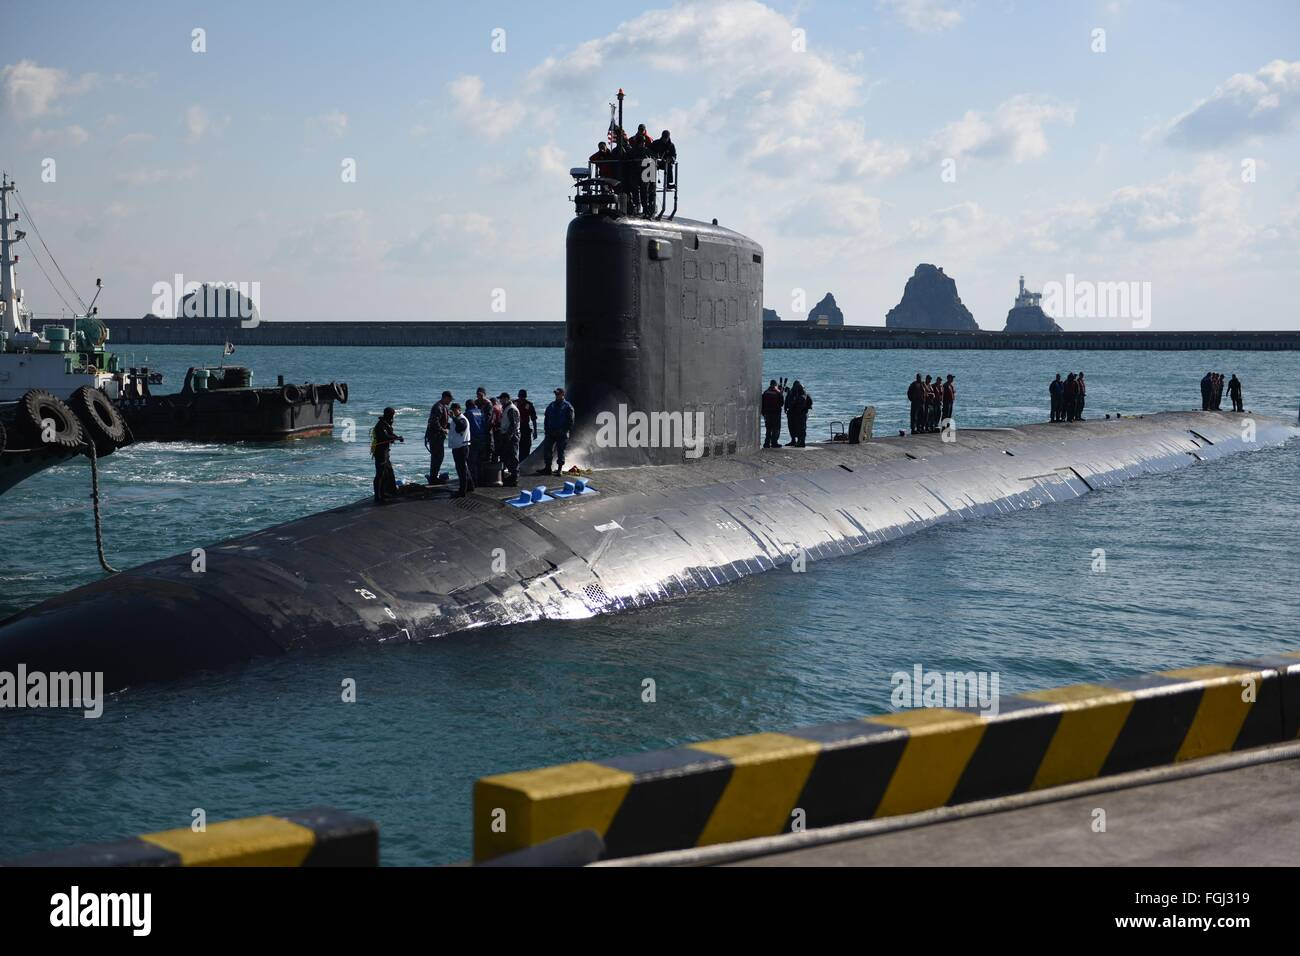 US Navy Virginia-class attack submarine USS North Carolina pulls into dock at ROK Fleet base February 16, 2016 in - Stock Image